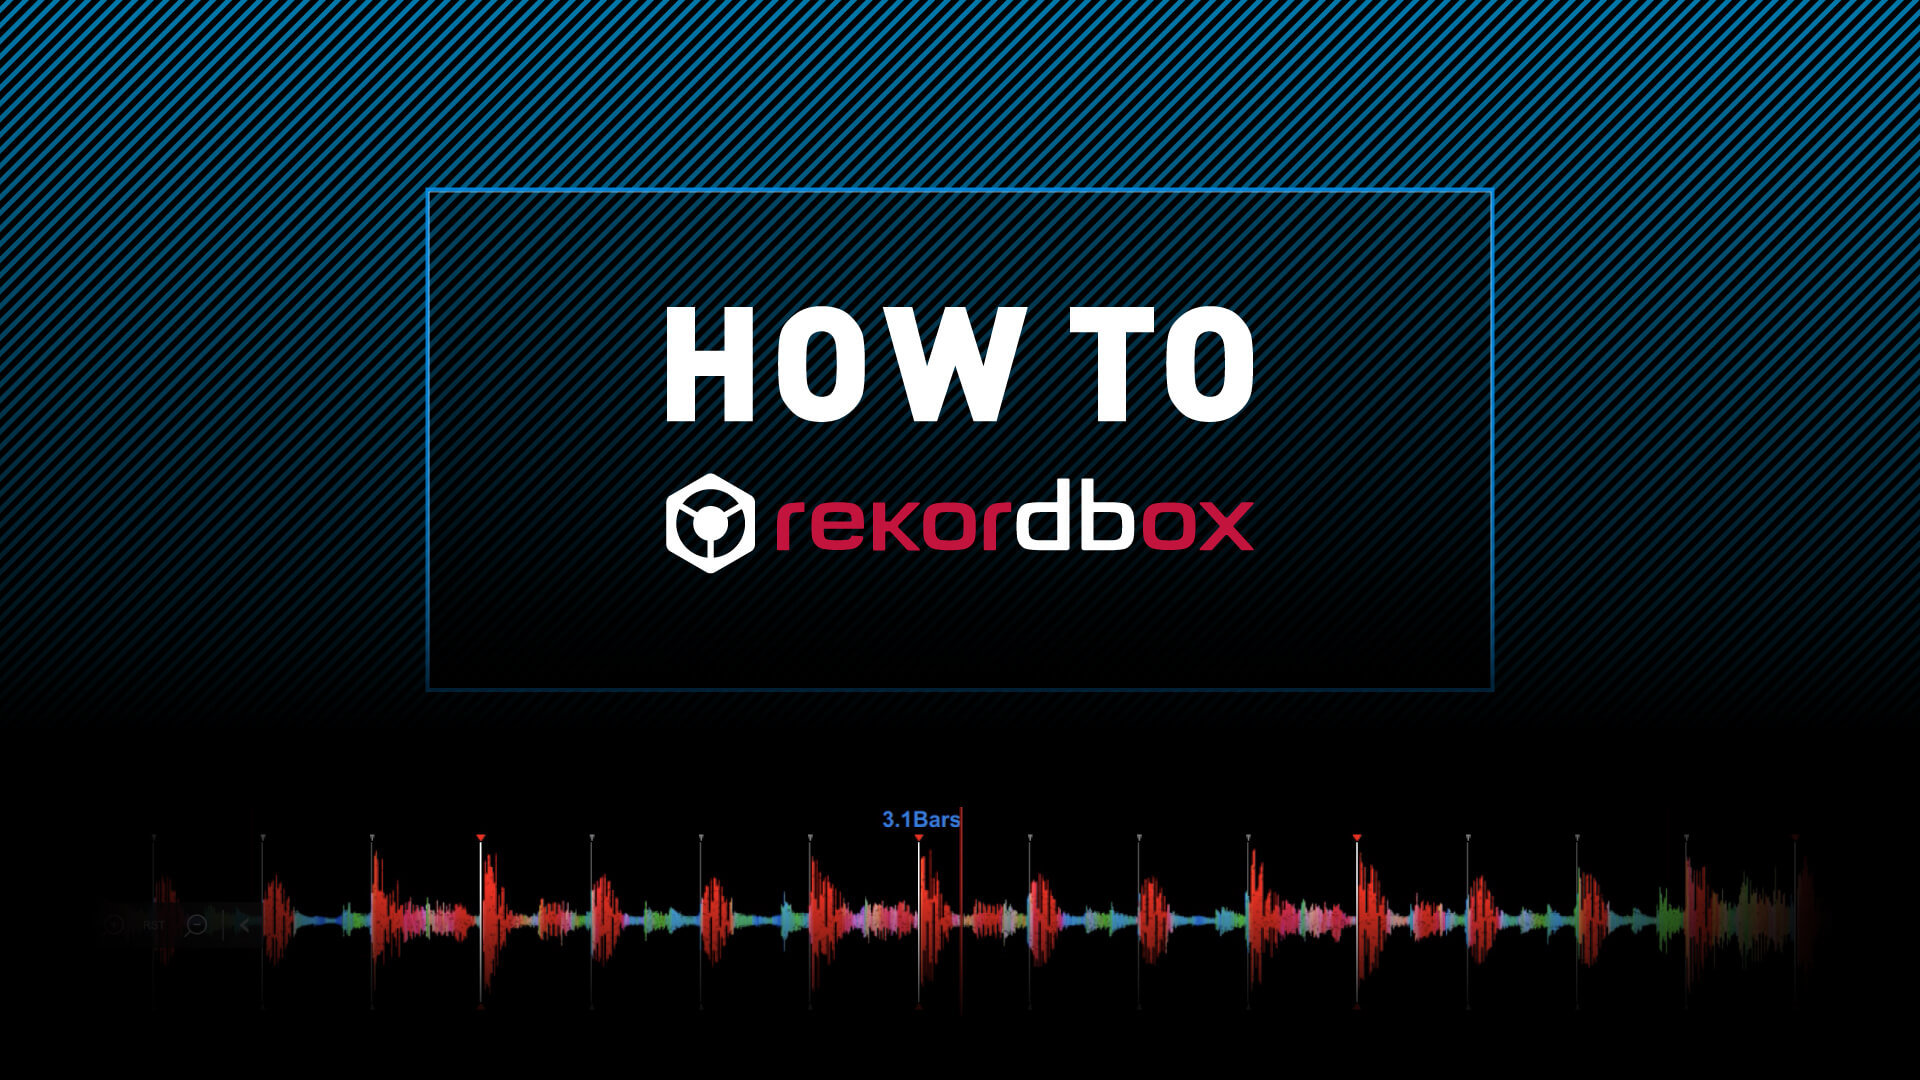 HOW TO rekordbox Vol.1